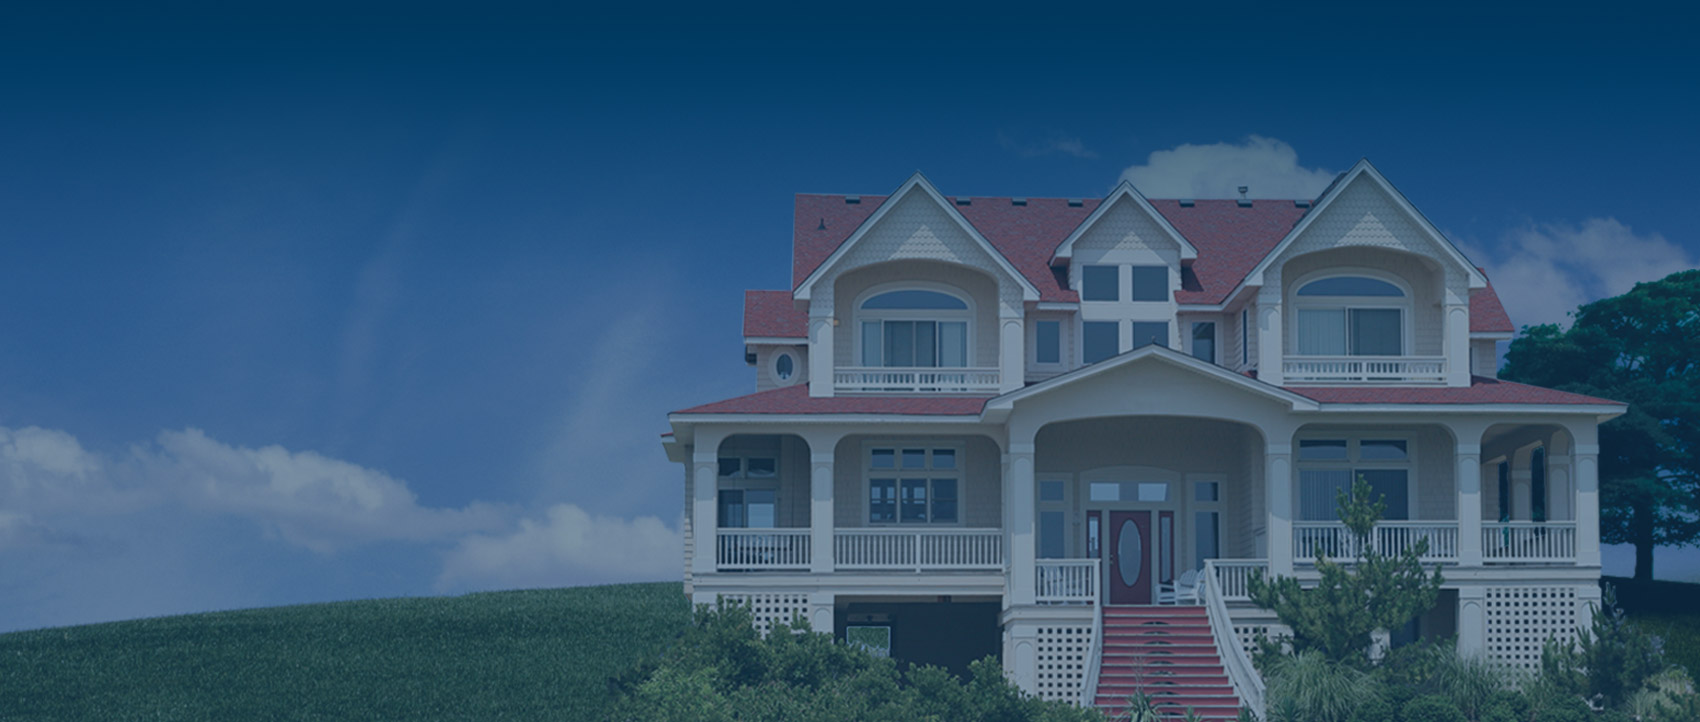 Home Inspection Checklist in Greeley